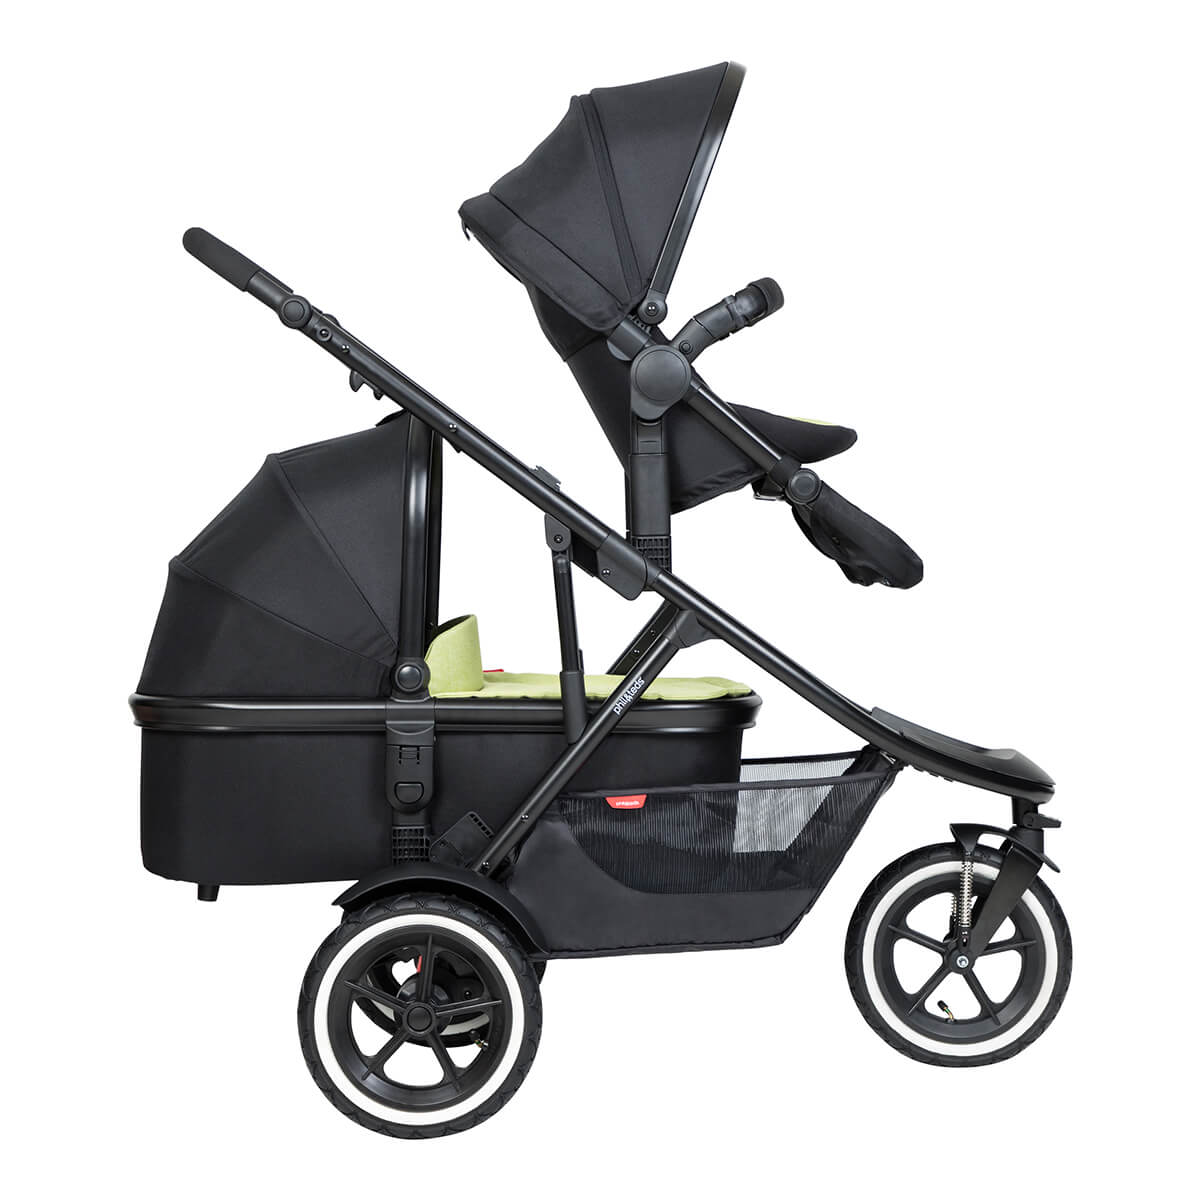 https://cdn.accentuate.io/4509528490072/19272668282968/philteds-sport-poussette-with-double-kit-extended-clip-and-snug-carrycot-side-view-v1626484484524.jpg?1200x1200